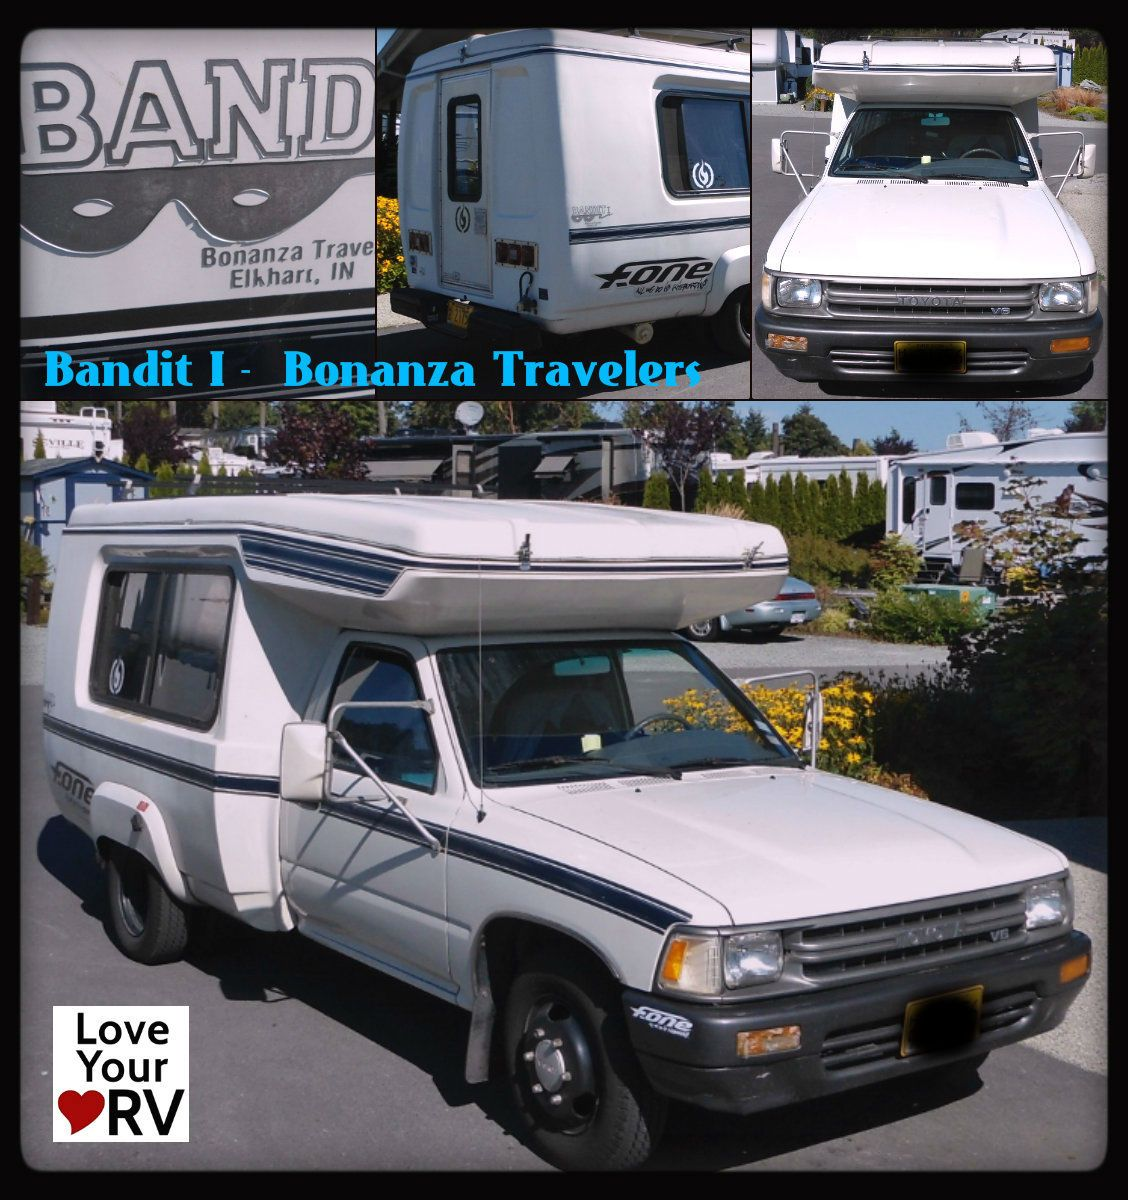 Bandit I - built by Bonanza Travelers in Elkhart, IN  Camper is on a